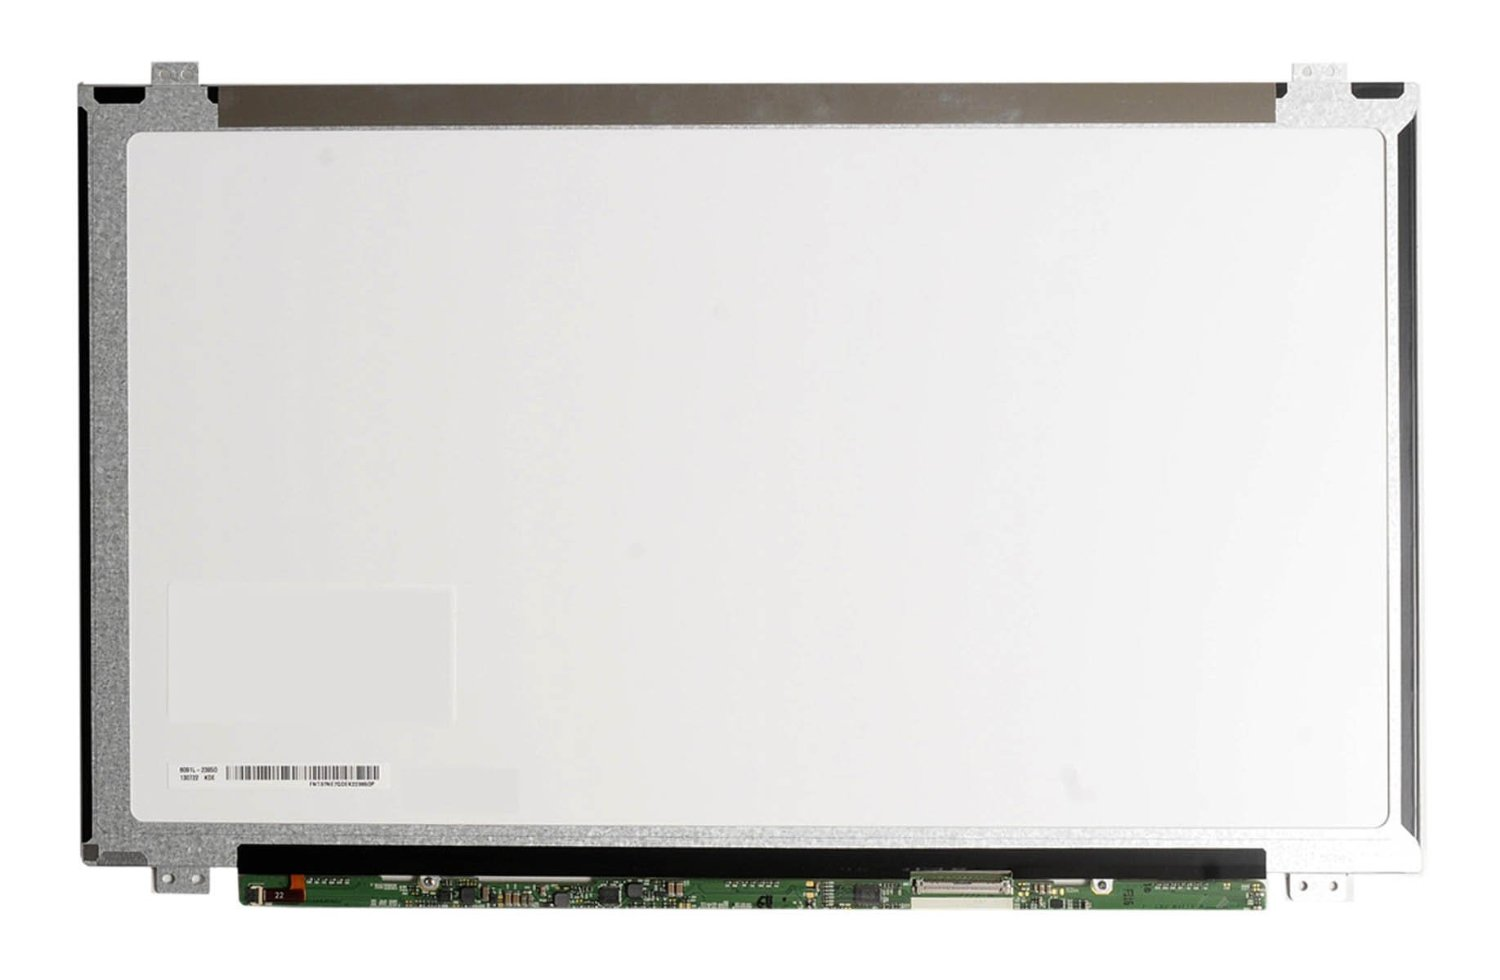 For Acer Aspire 5534-1096, 5534-1121, 5810 LP156WH3(TL)(A1), Laptop LCD Replacement Screen 15.6 WXGA HD LED brand new lp156wh3 tl s1 laptop slim led lcd screen lp156wh3 tls1 for fujitsu lifebook ah532 15 6 wxga hd